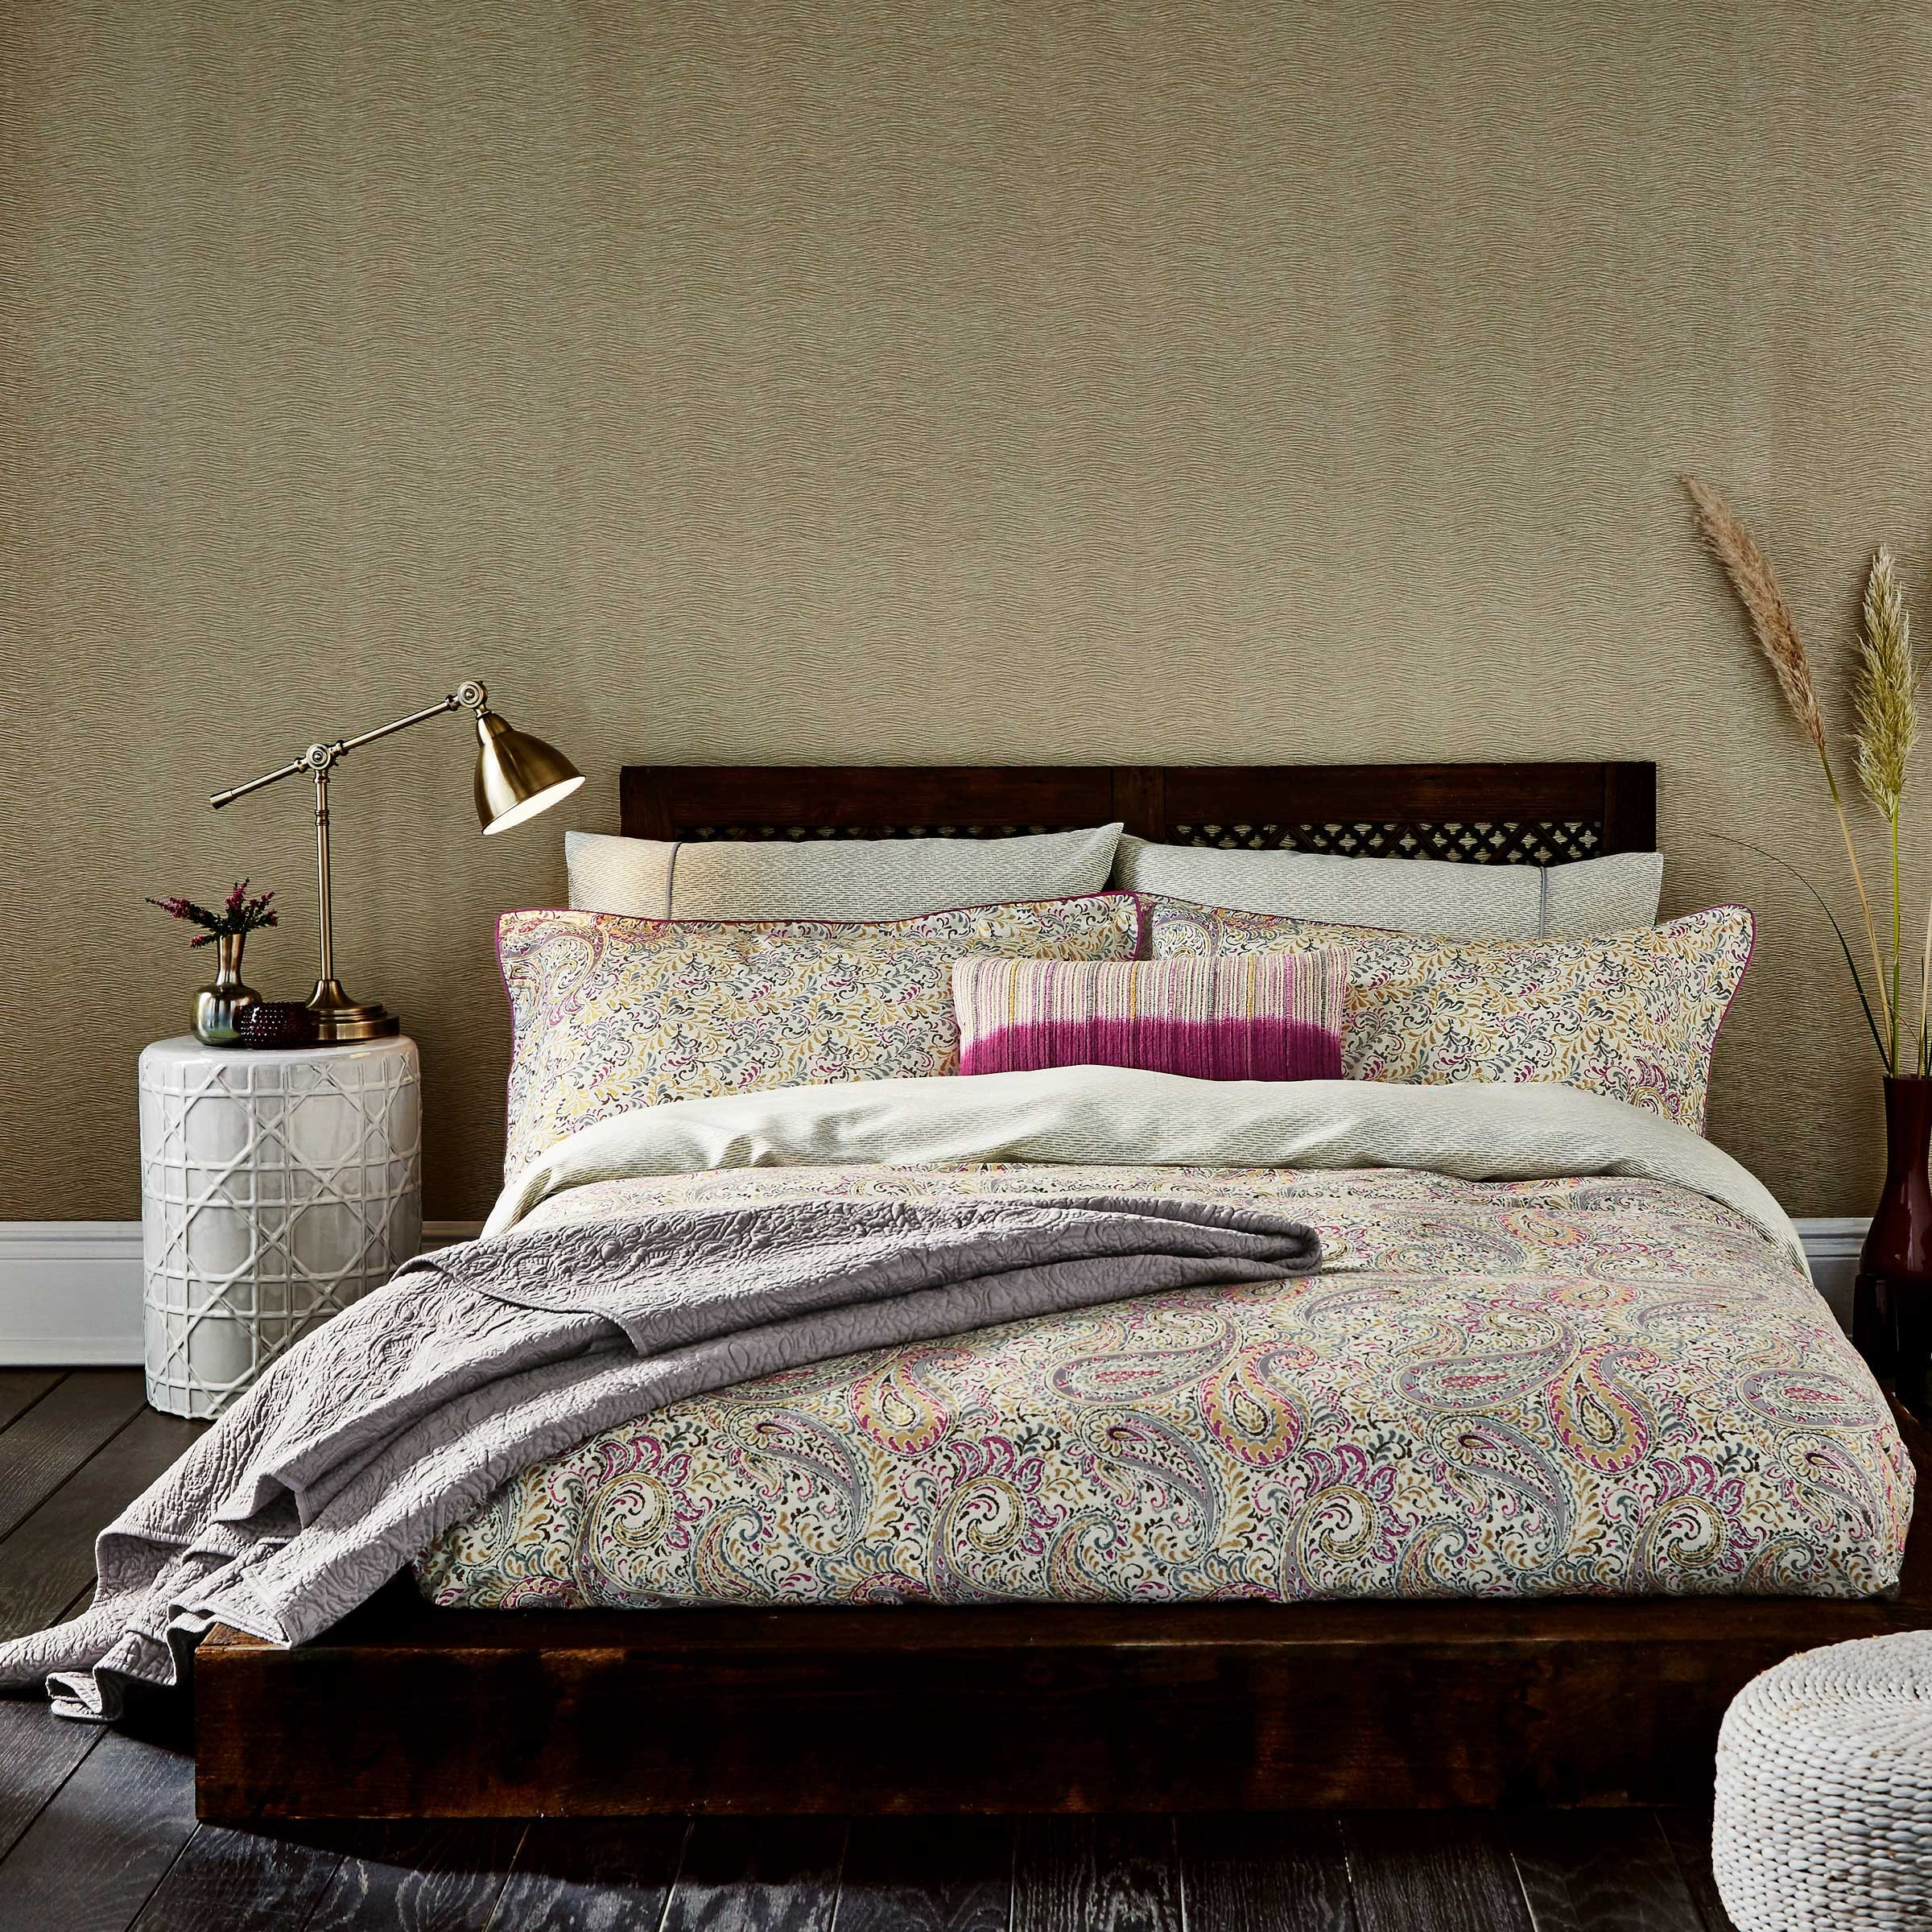 Bedeck 1951 Damara Bedding in Magenta